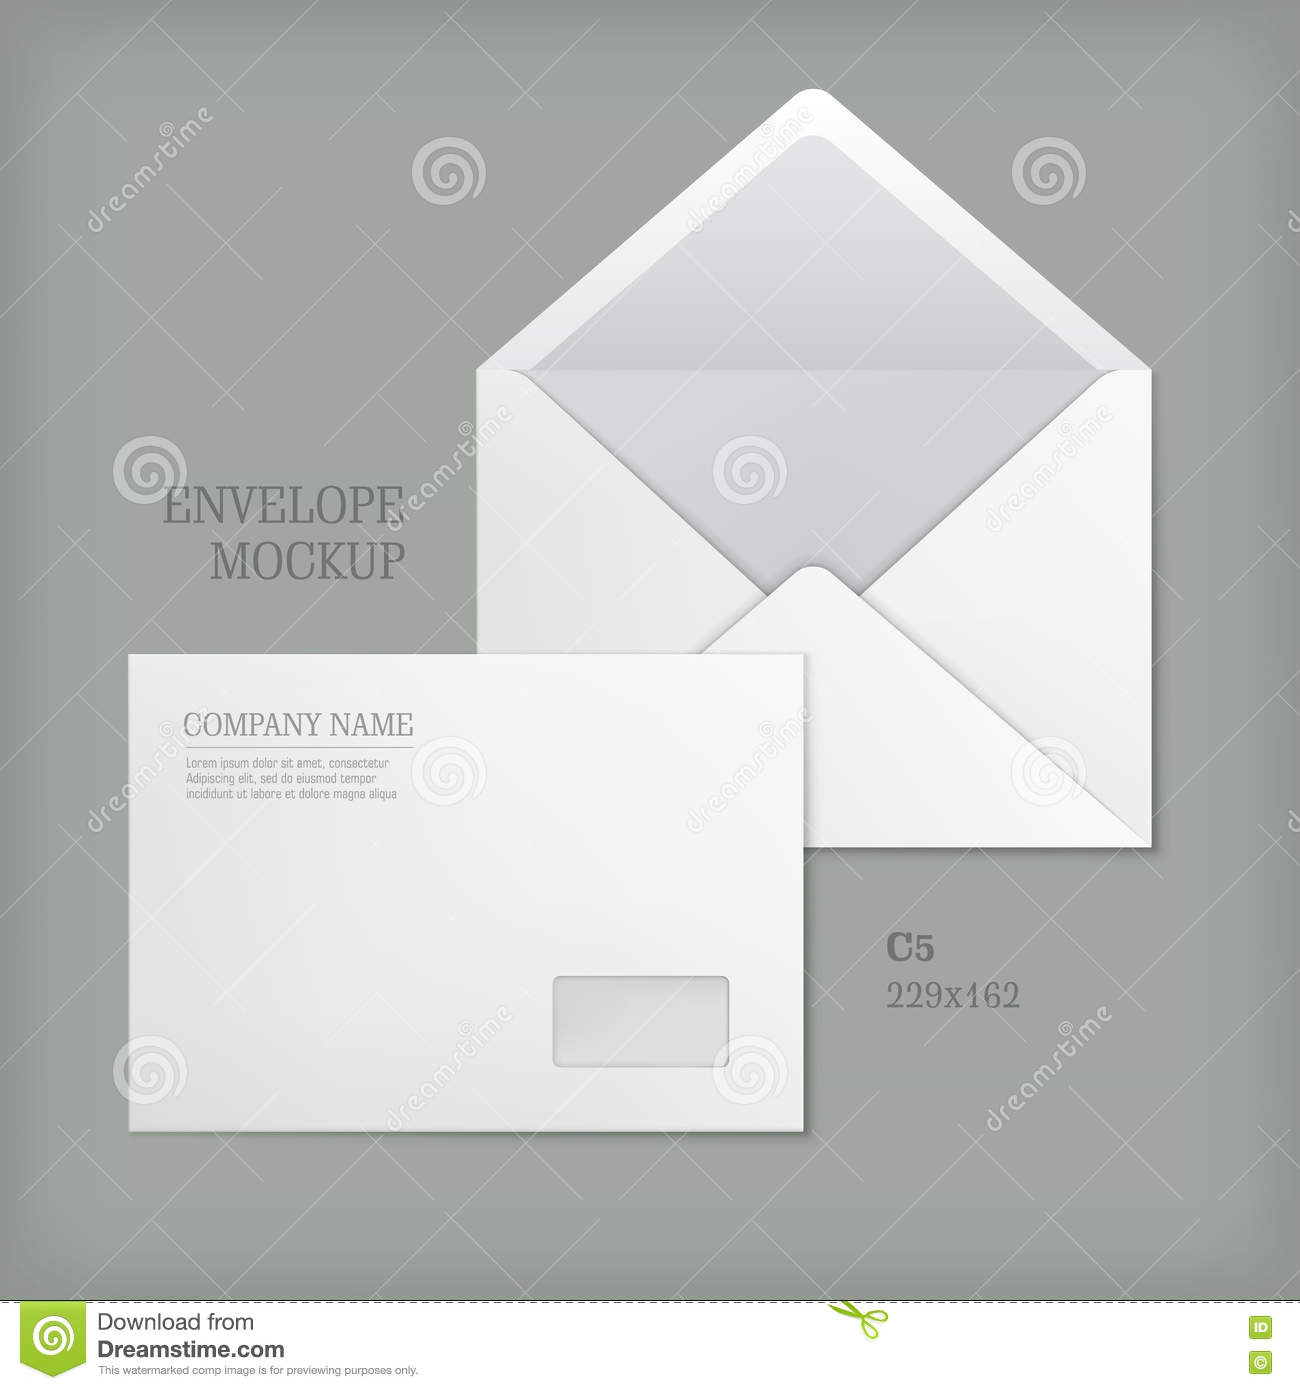 Pretty 1 Page Proposal Template Tiny 1 Page Resume Sample Square 1.5 Inch Hexagon Template 10 Commandment Coloring Pages Young 100 Best Resume Words Fresh100 Day Glasses Template Mockup Open And Closed Envelopes